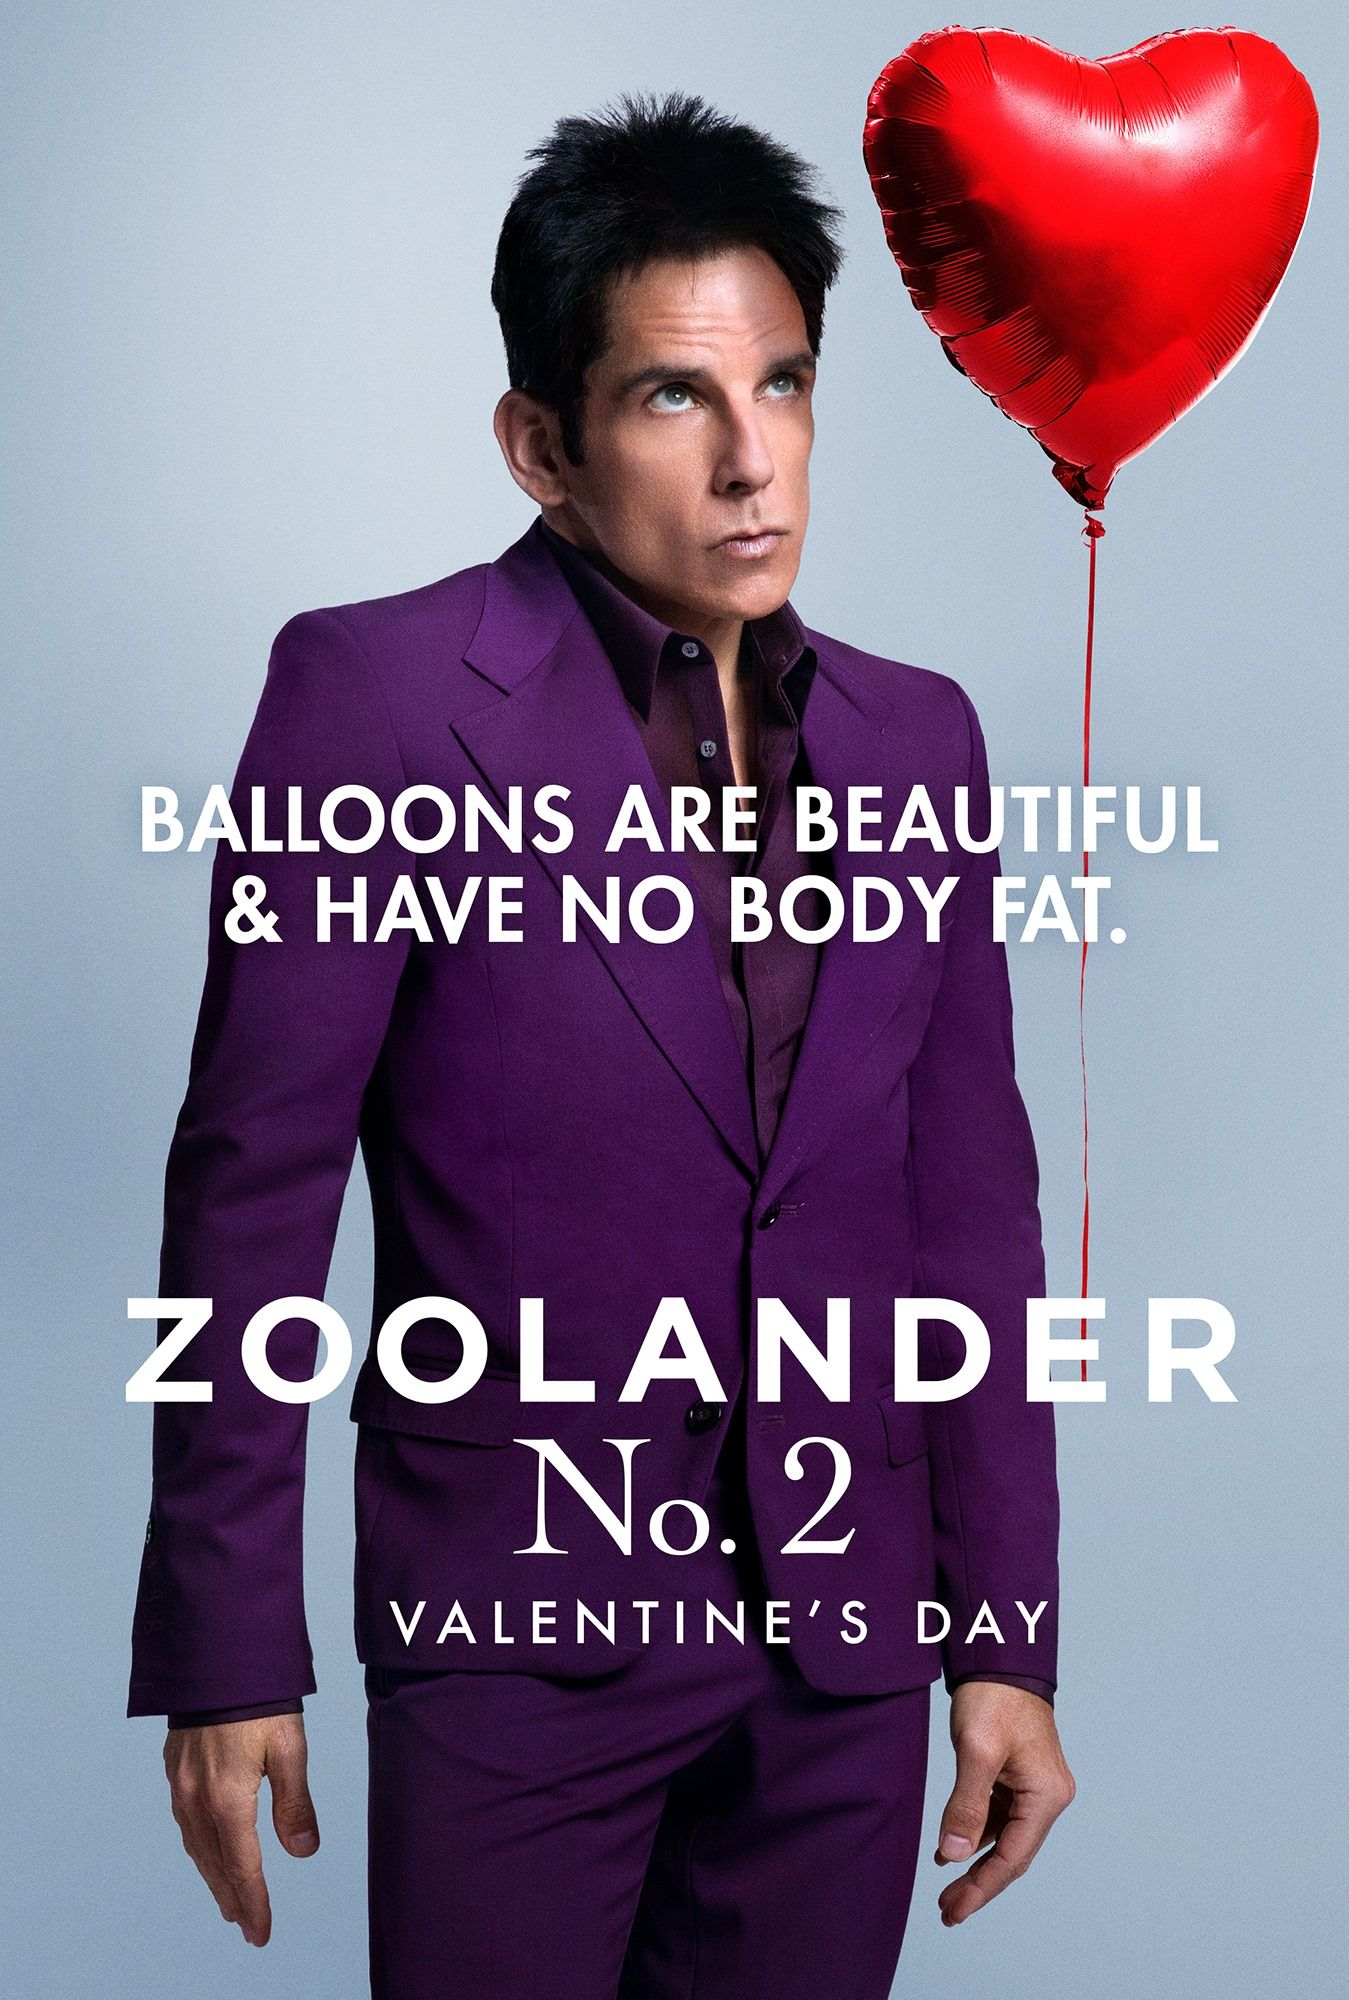 Balloons are beautiful and have no body fat  Derek Zoolander